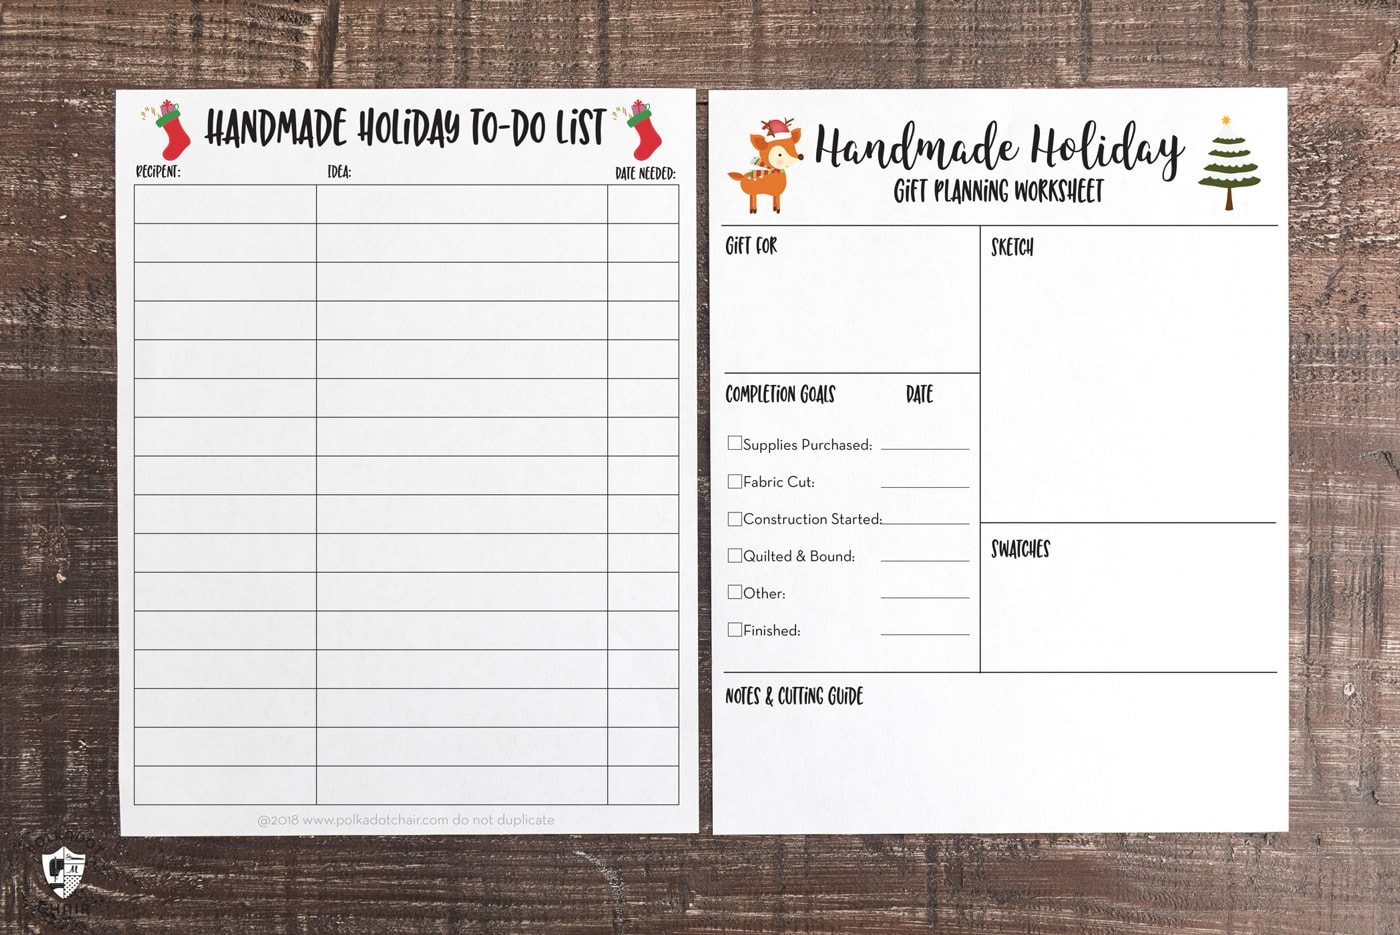 Free Printable Holiday Planner For Handmade Ts